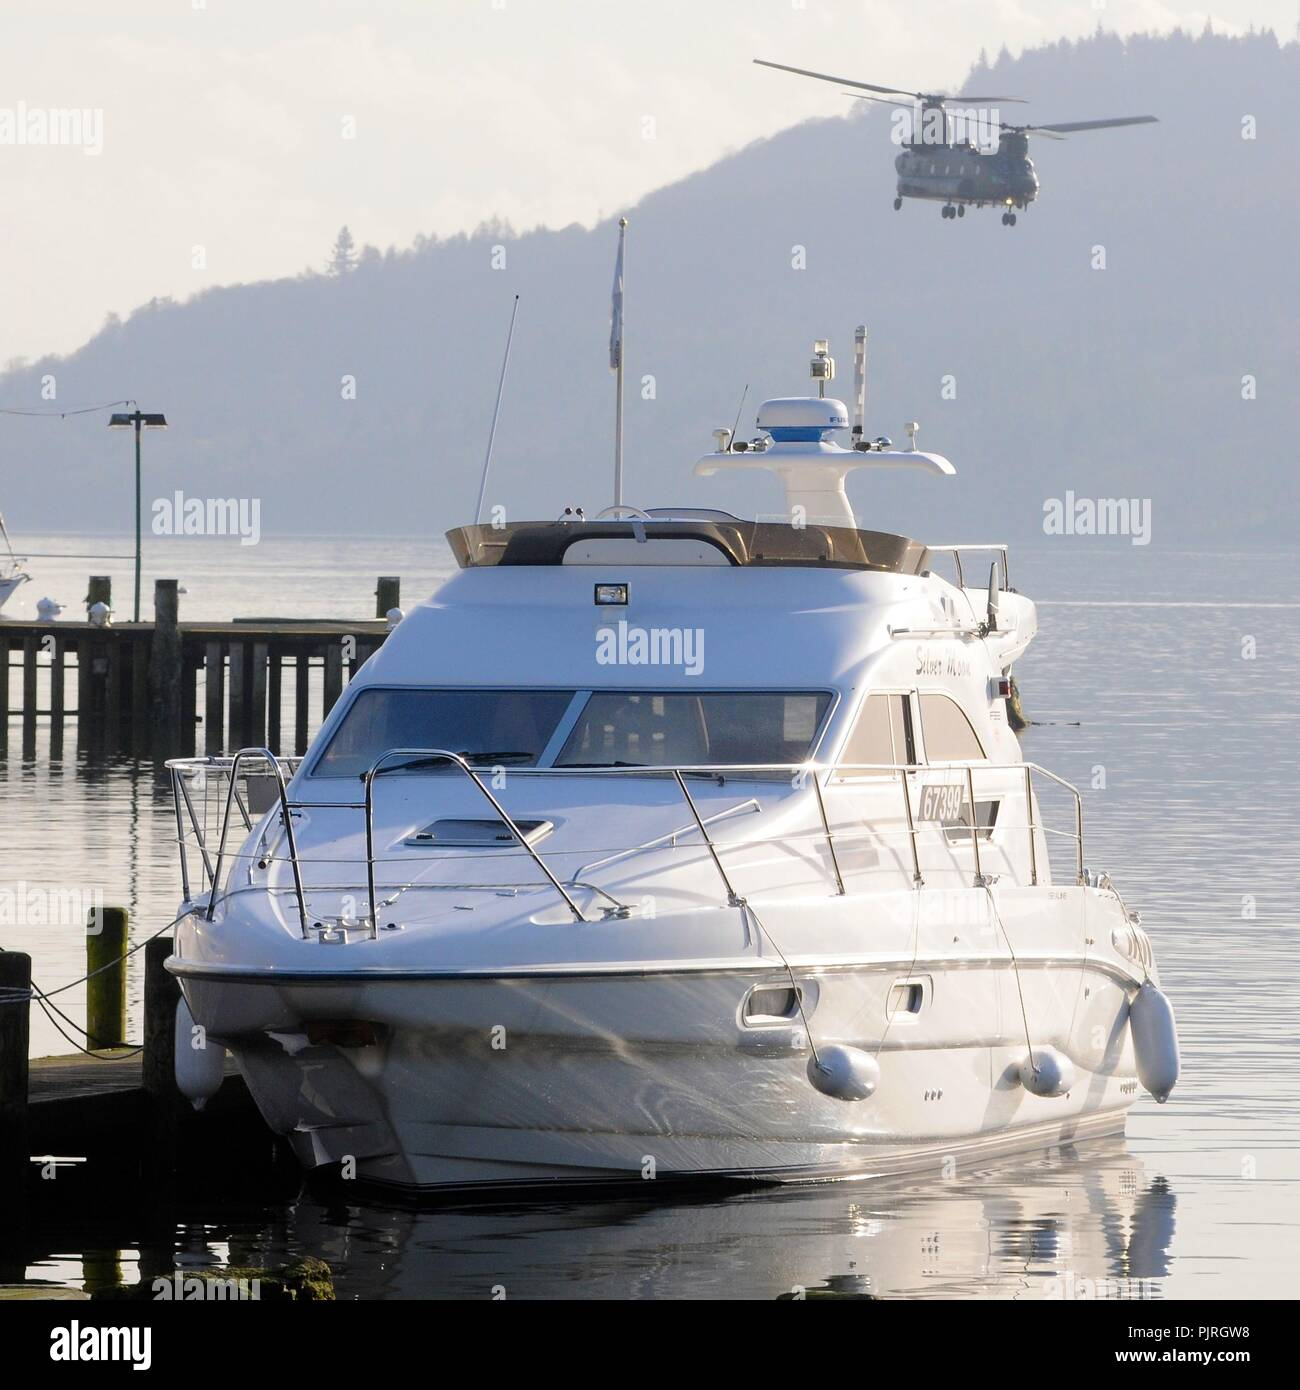 Boat and helicopter on Lake Windermere - Stock Image